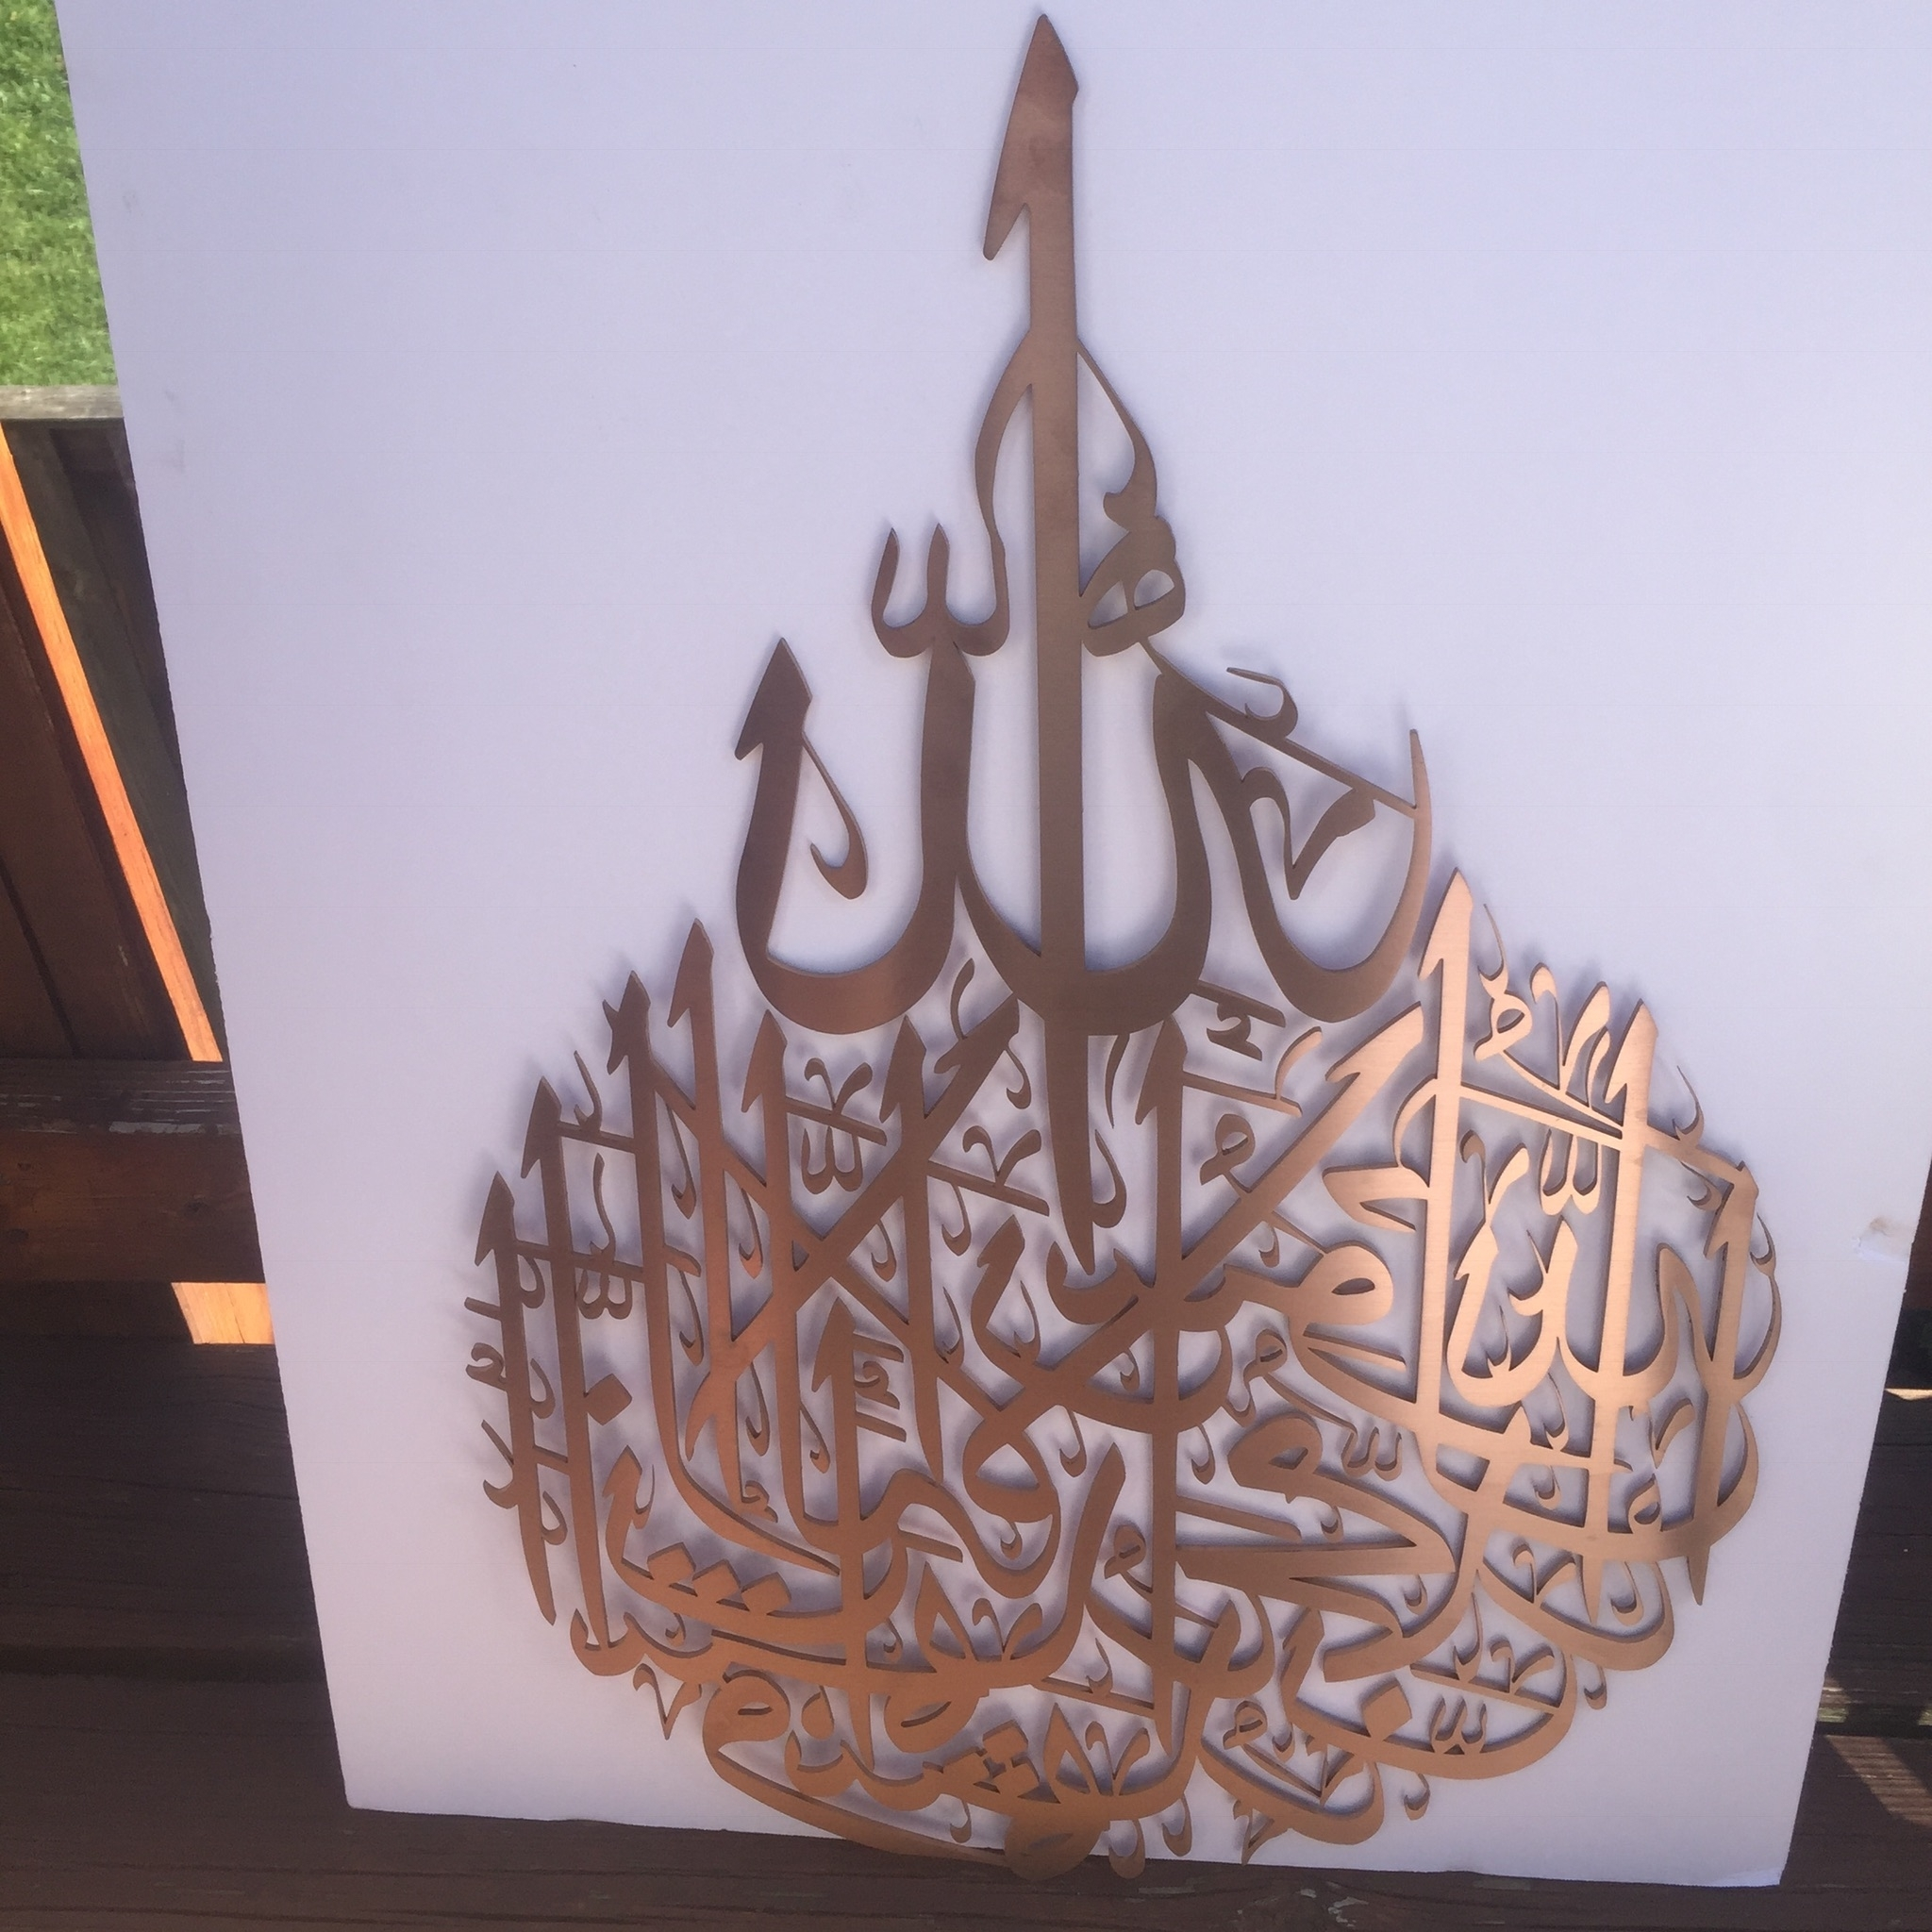 Fretwork Wall Art Within 2017 Shahada / Kalima Islamic Calligraphy Modern Islamic Stainless (View 4 of 15)